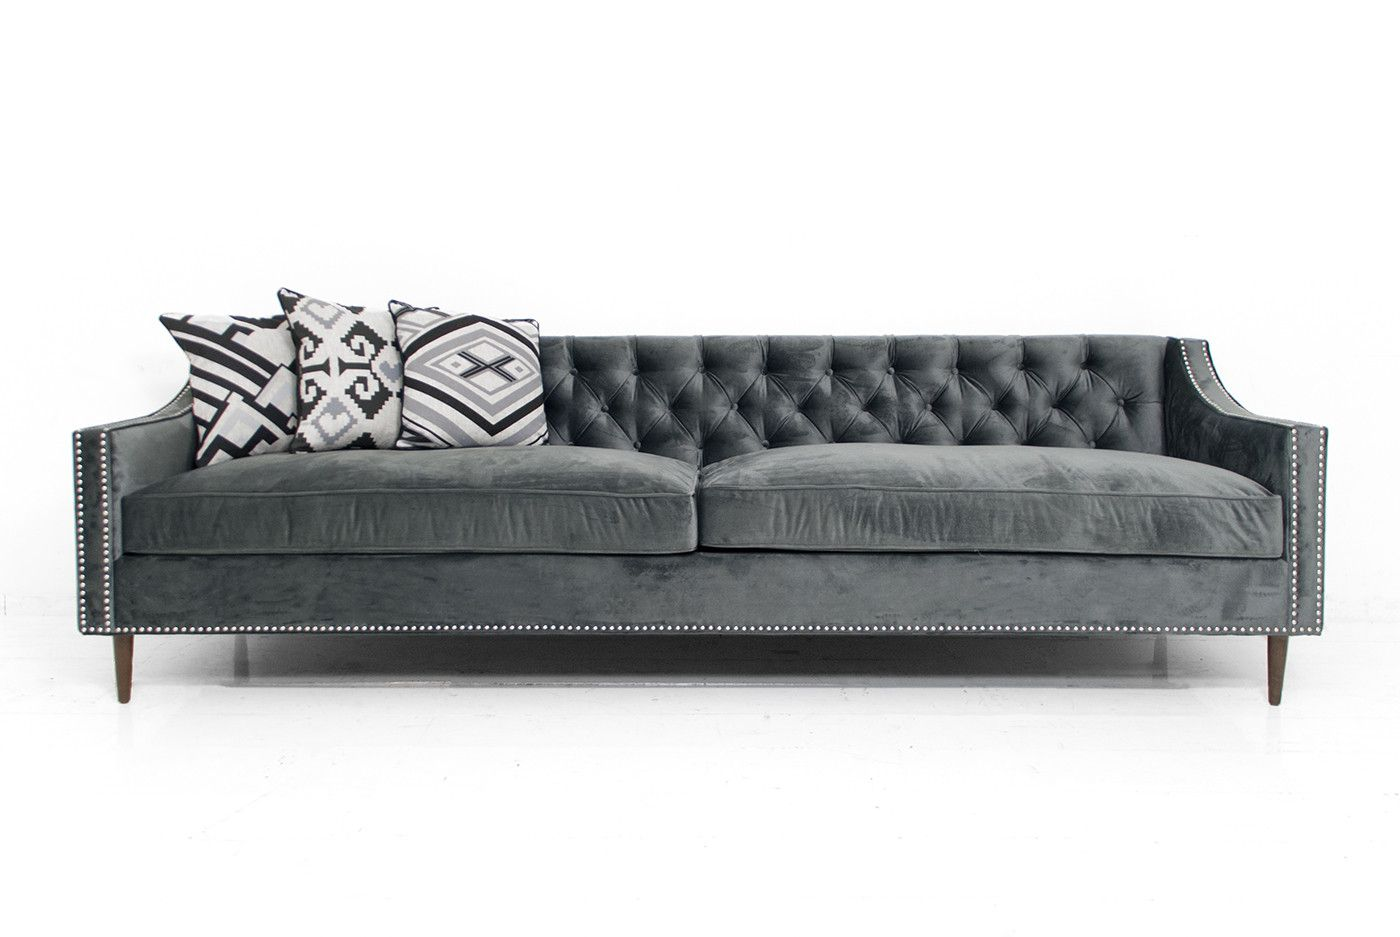 Charcoal Gray Tufted Sofa Small Modular Sectional Audrey In Velvet Seating Pinterest